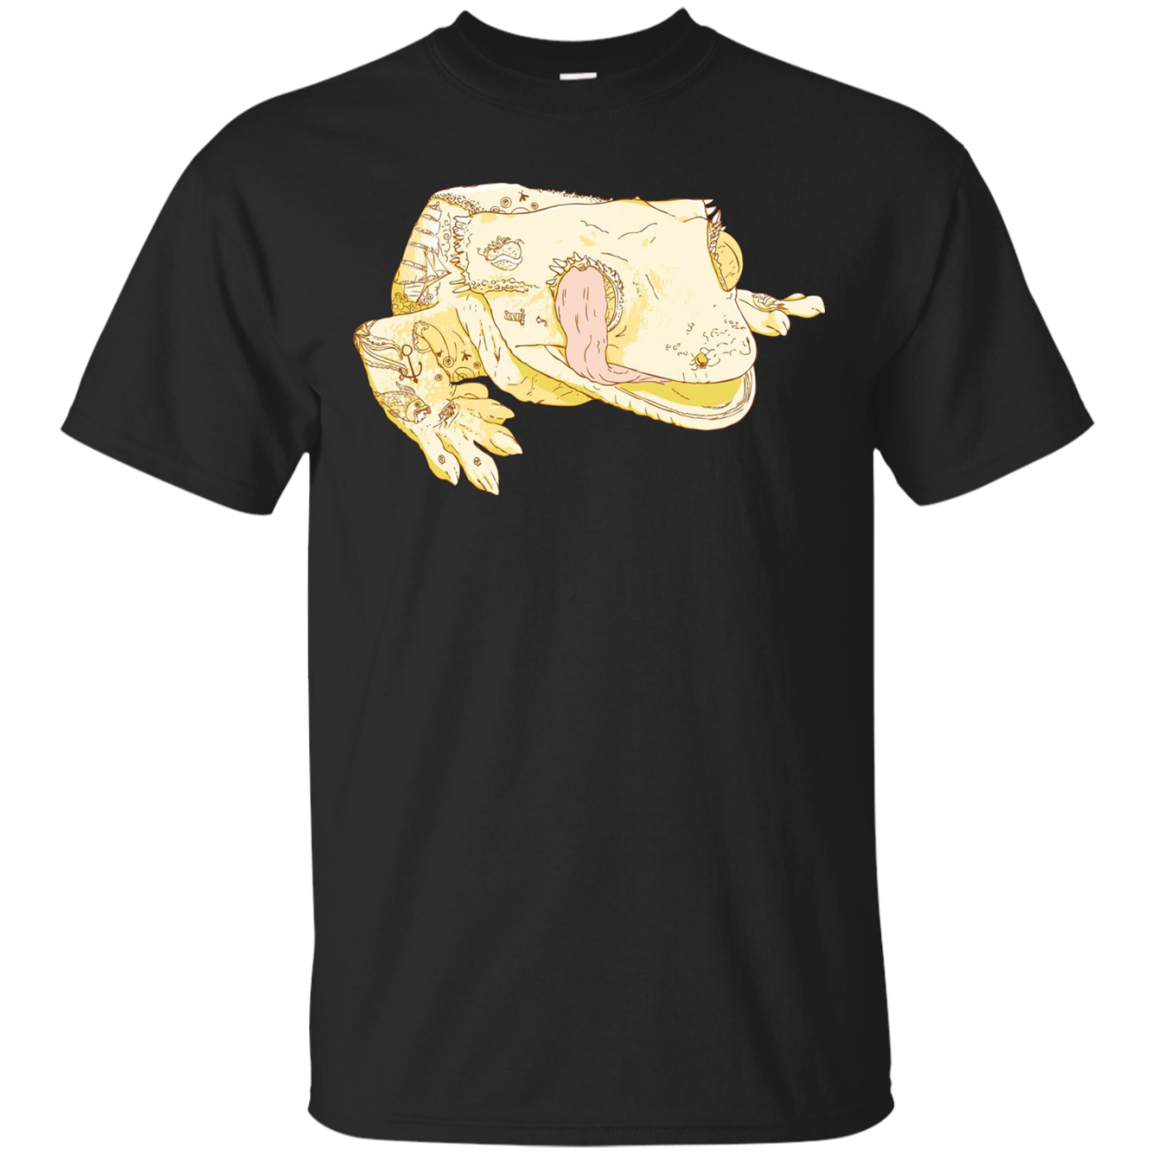 Crested Gecko Lizard with Tattoos Licking Eyeball T-Shirt